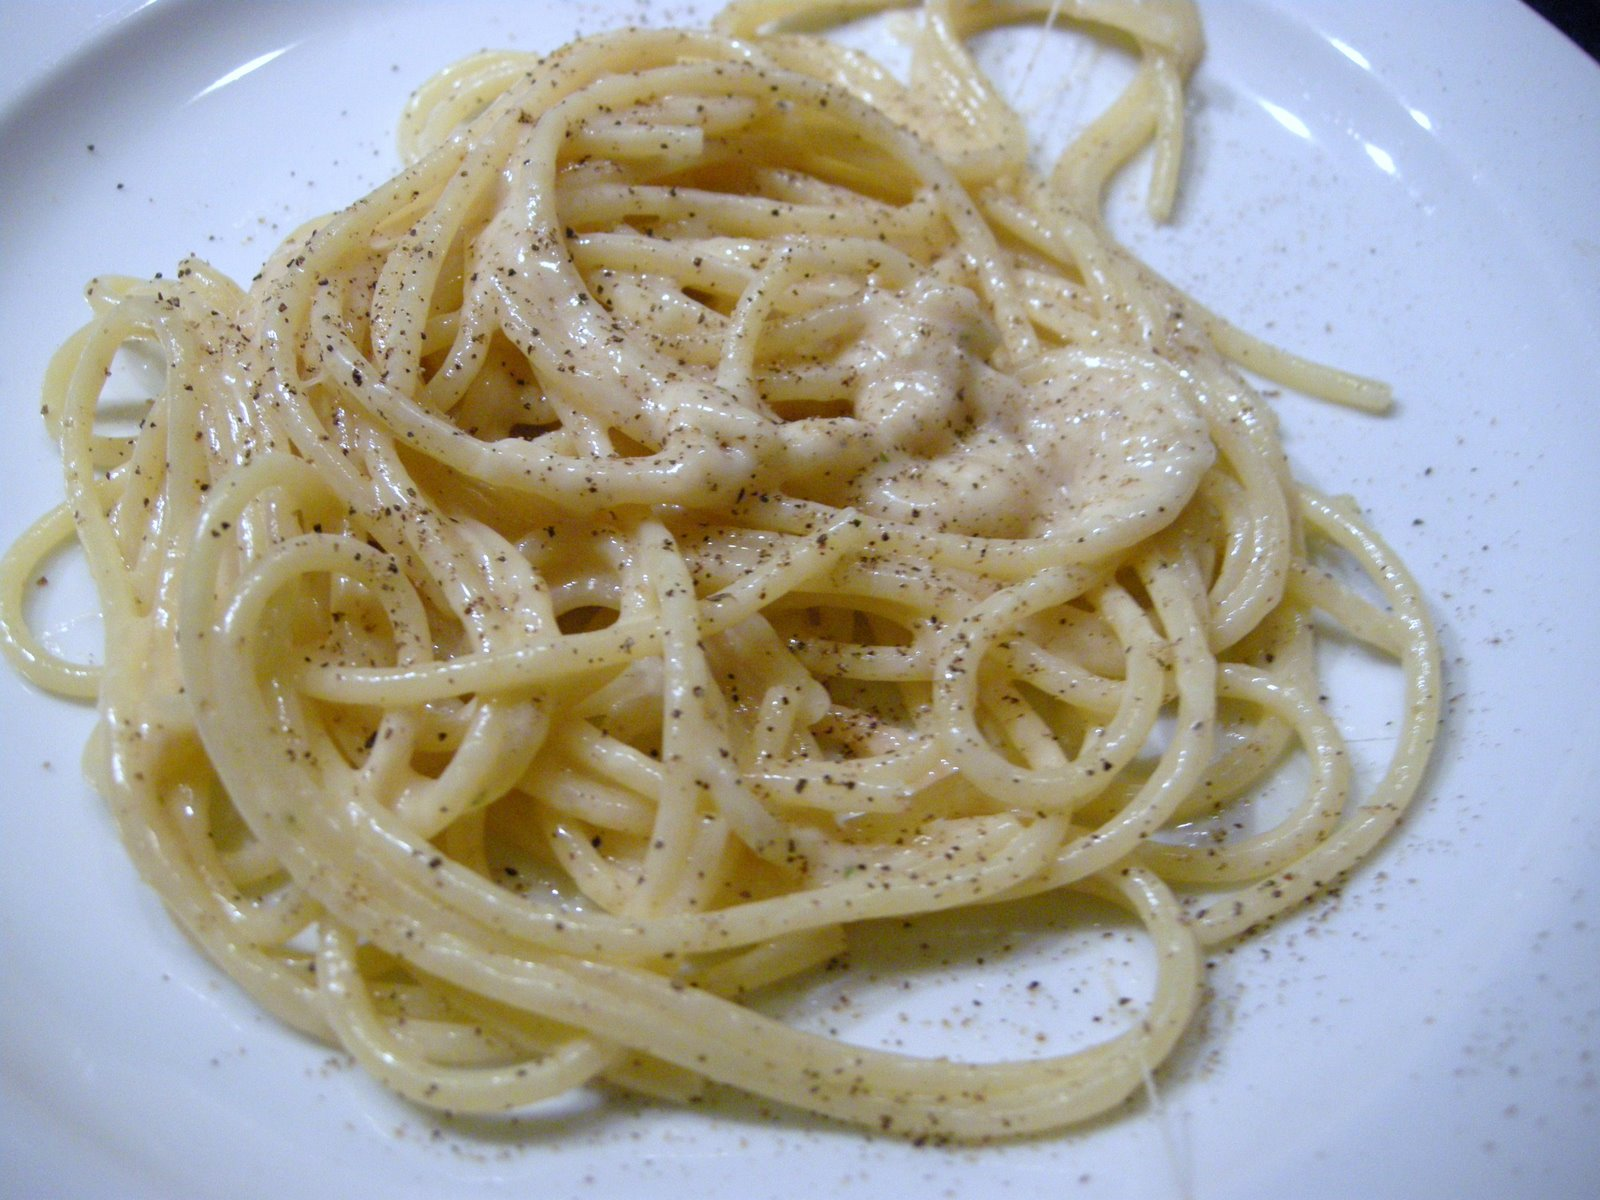 Spaghetti Cacio e Pepe - from scratch